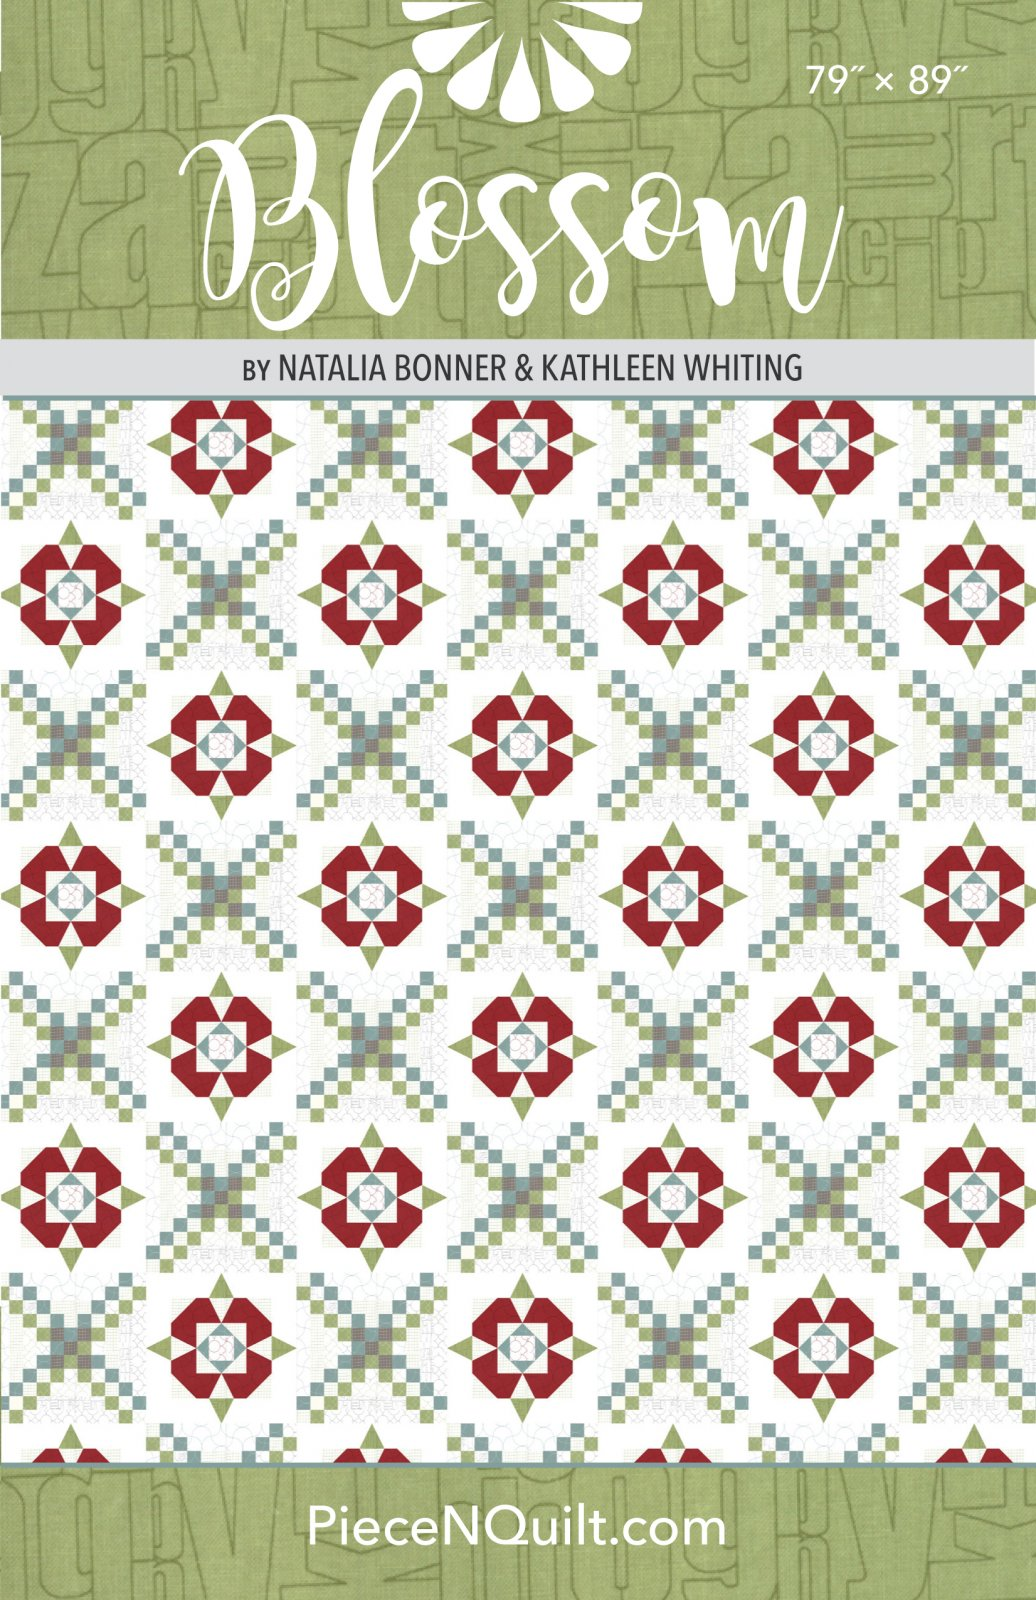 Blossom Quilt Pattern - PDF Version